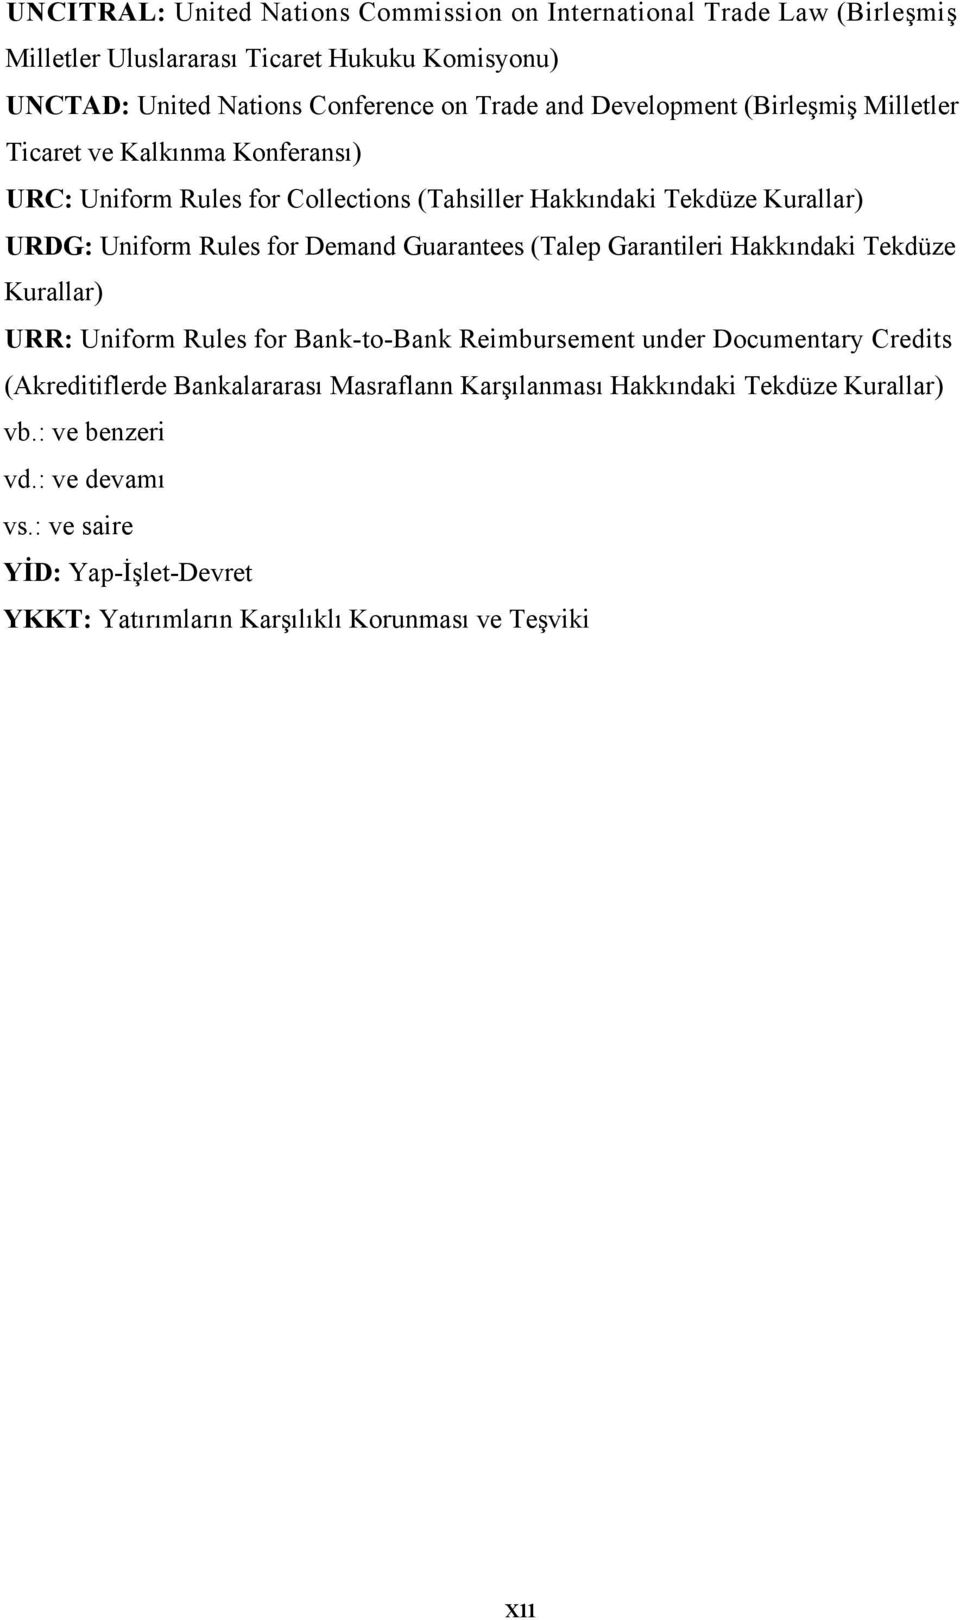 Demand Guarantees (Talep Garantileri Hakkındaki Tekdüze Kurallar) URR: Uniform Rules for Bank-to-Bank Reimbursement under Documentary Credits (Akreditiflerde